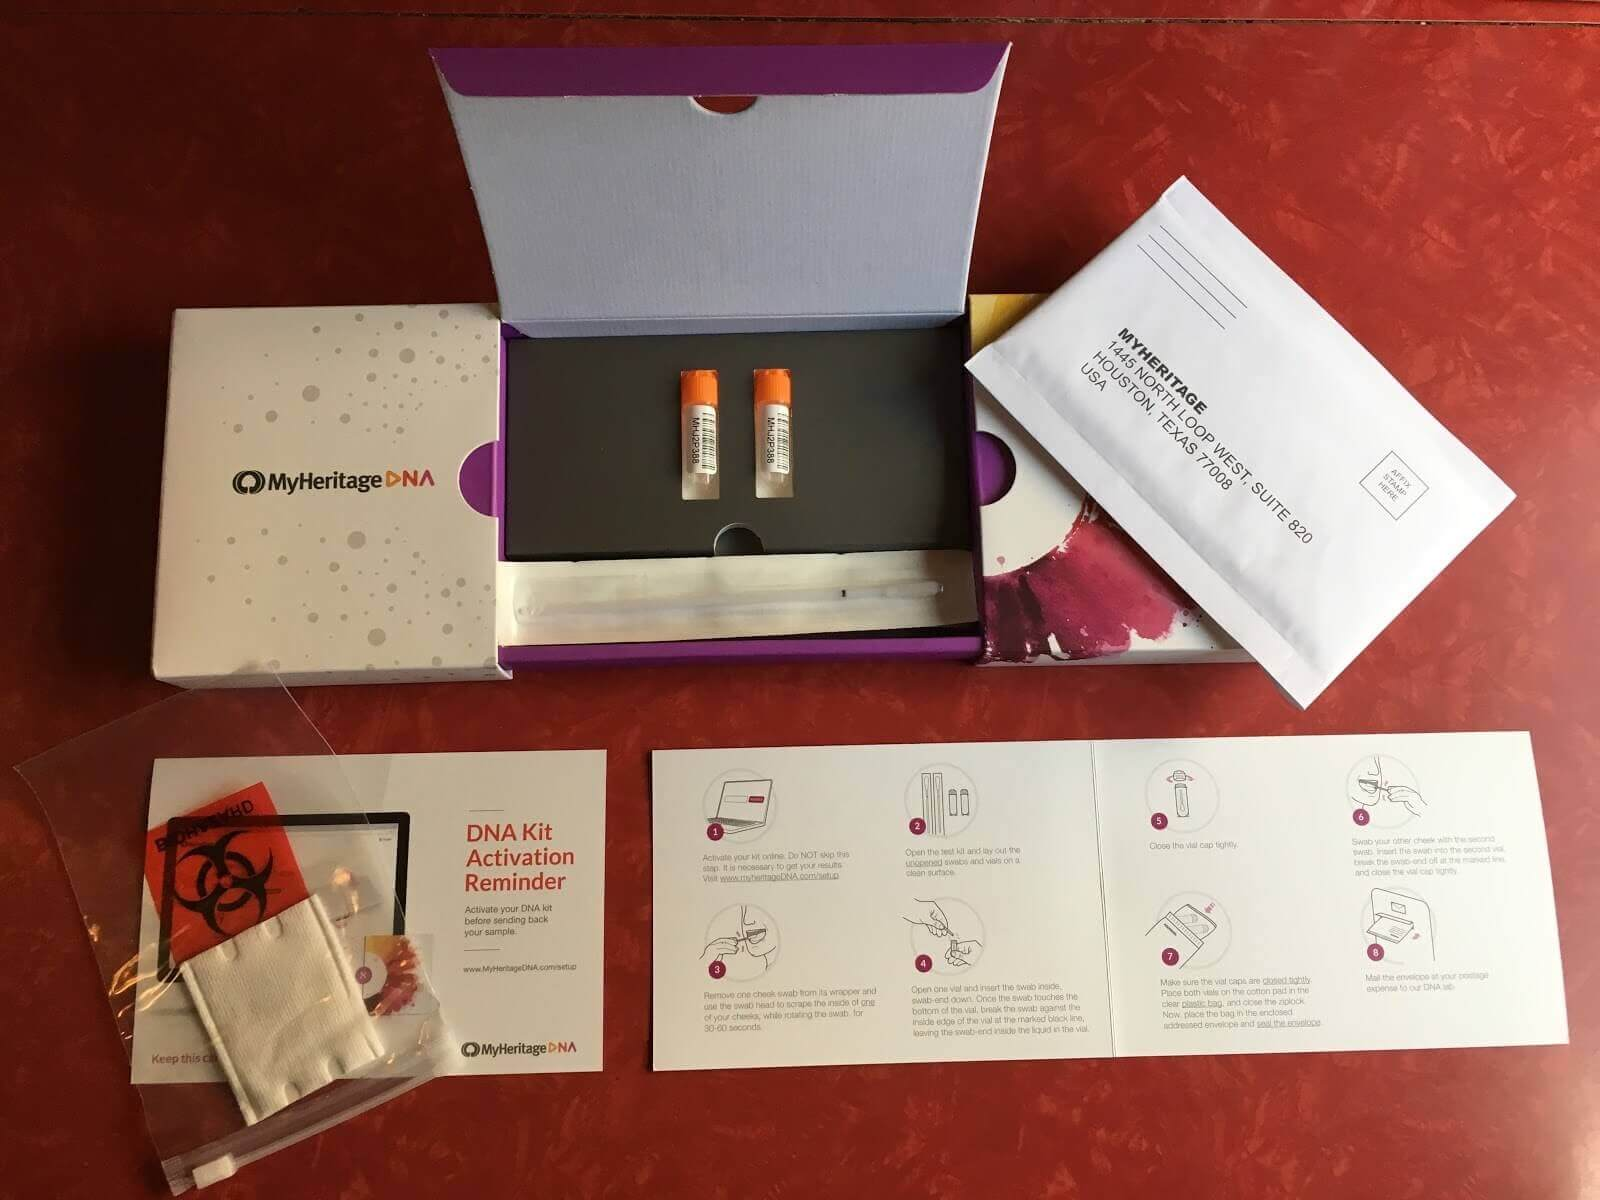 MyHeritage Review - Inside MyHeritage box